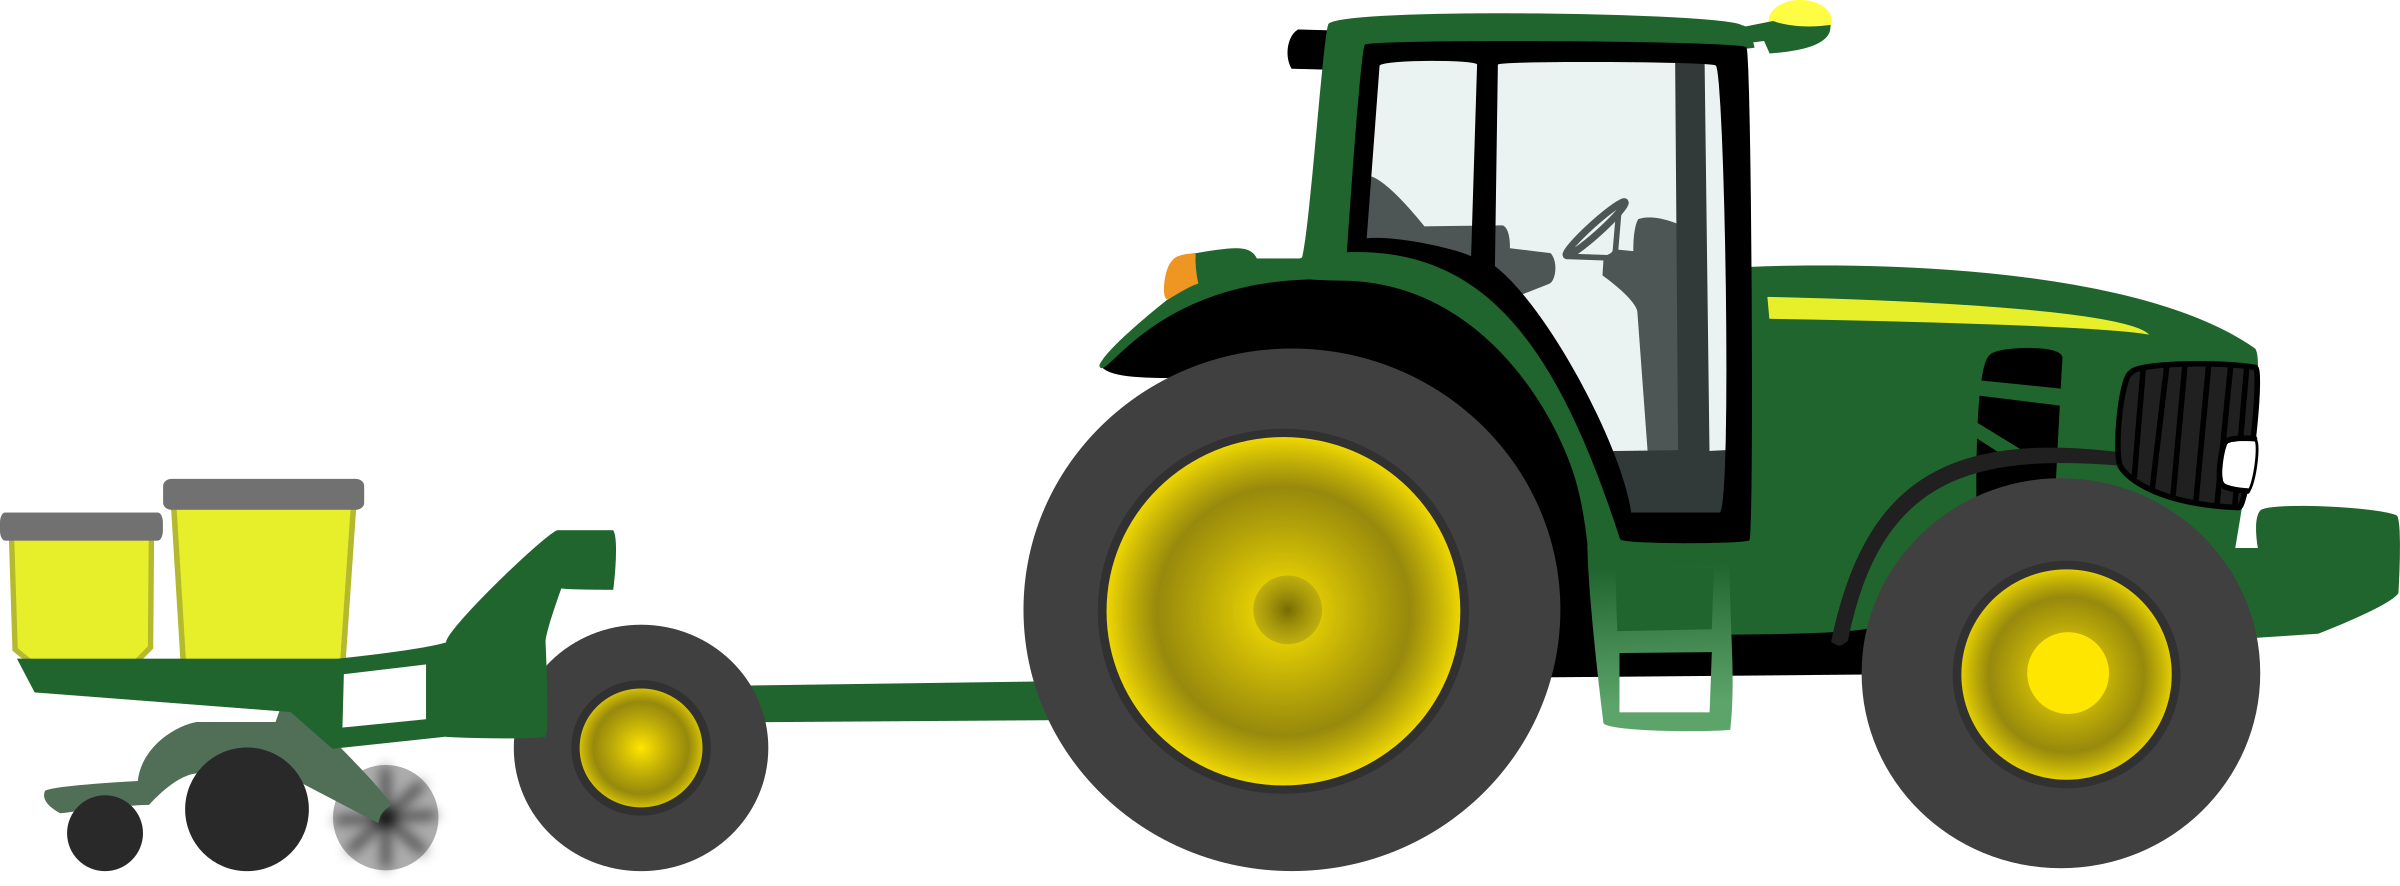 Farming clipart framer. Tractor free download best